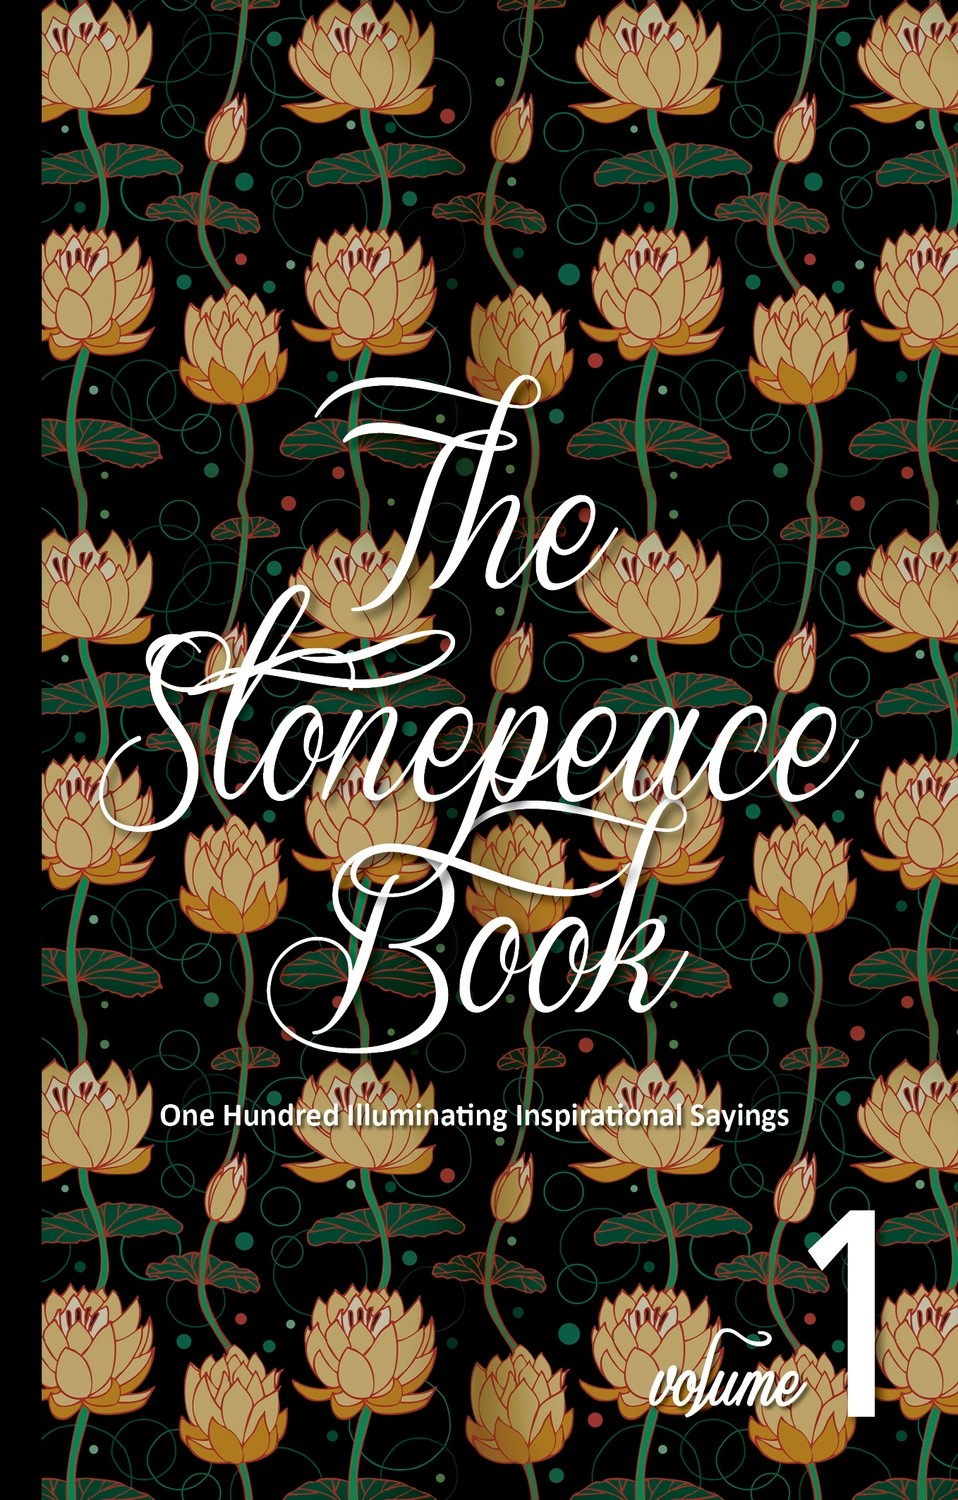 The Stonepeace Book Volume 1 : One Hundred Illuminating Inspirational Sayings